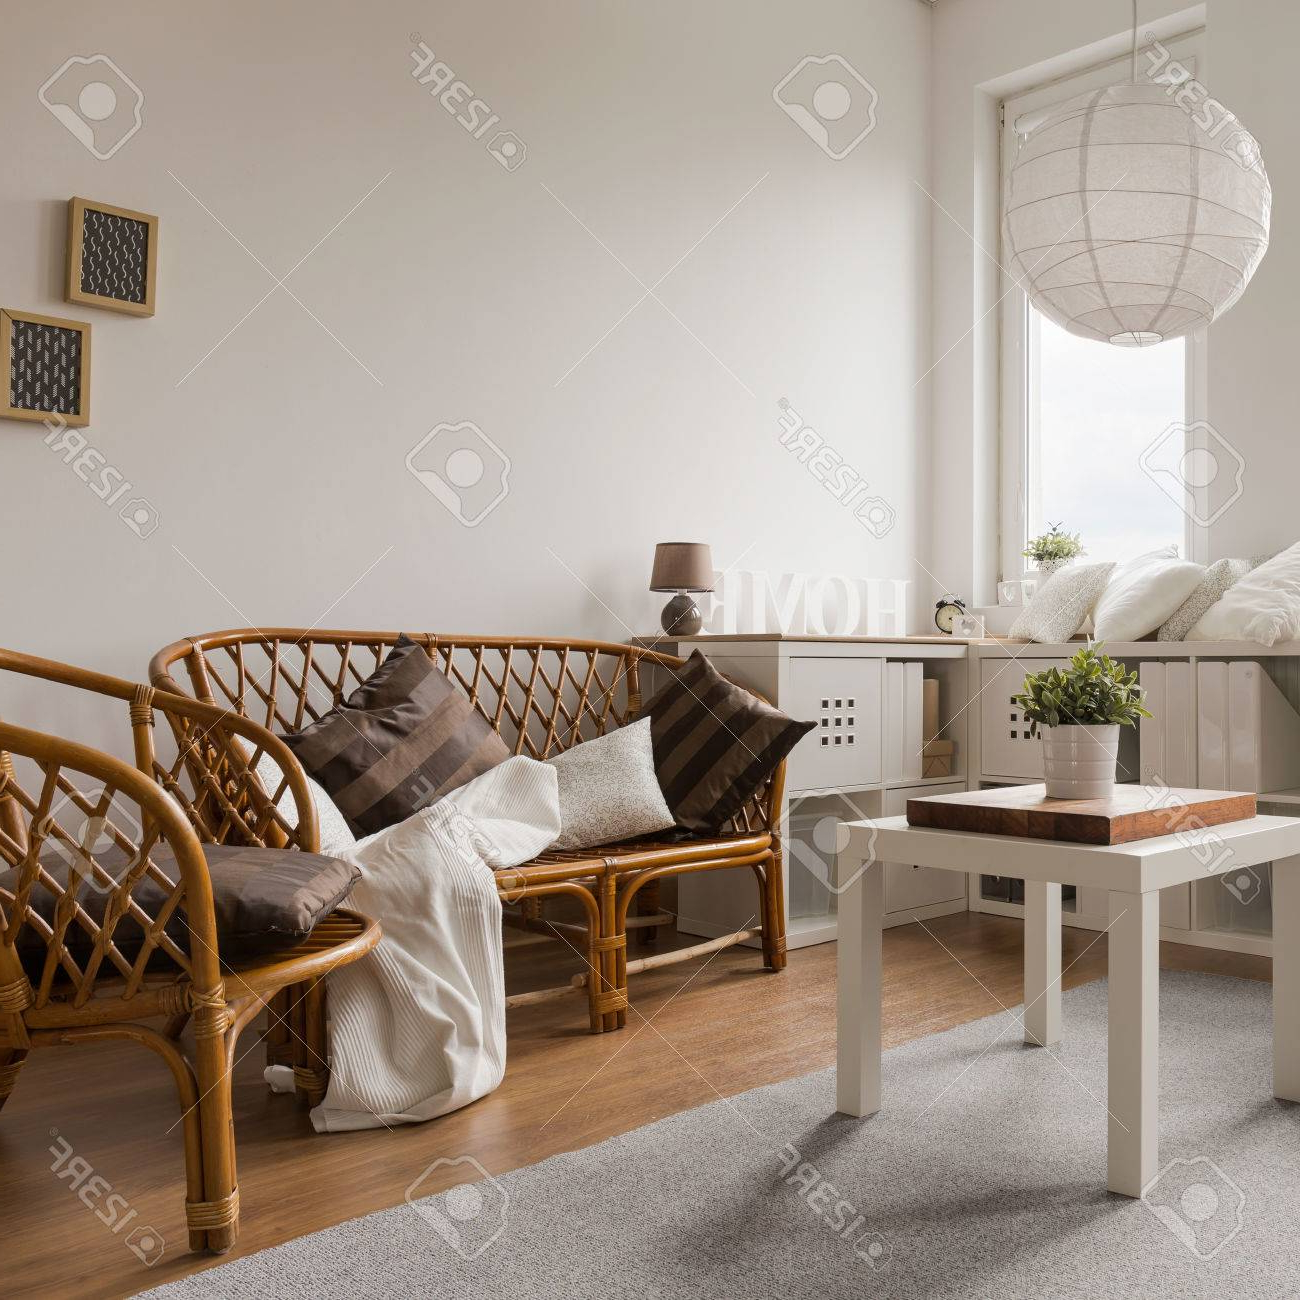 Sofa Mimbre Nkde Wicker sofa and Chairs In Living Room